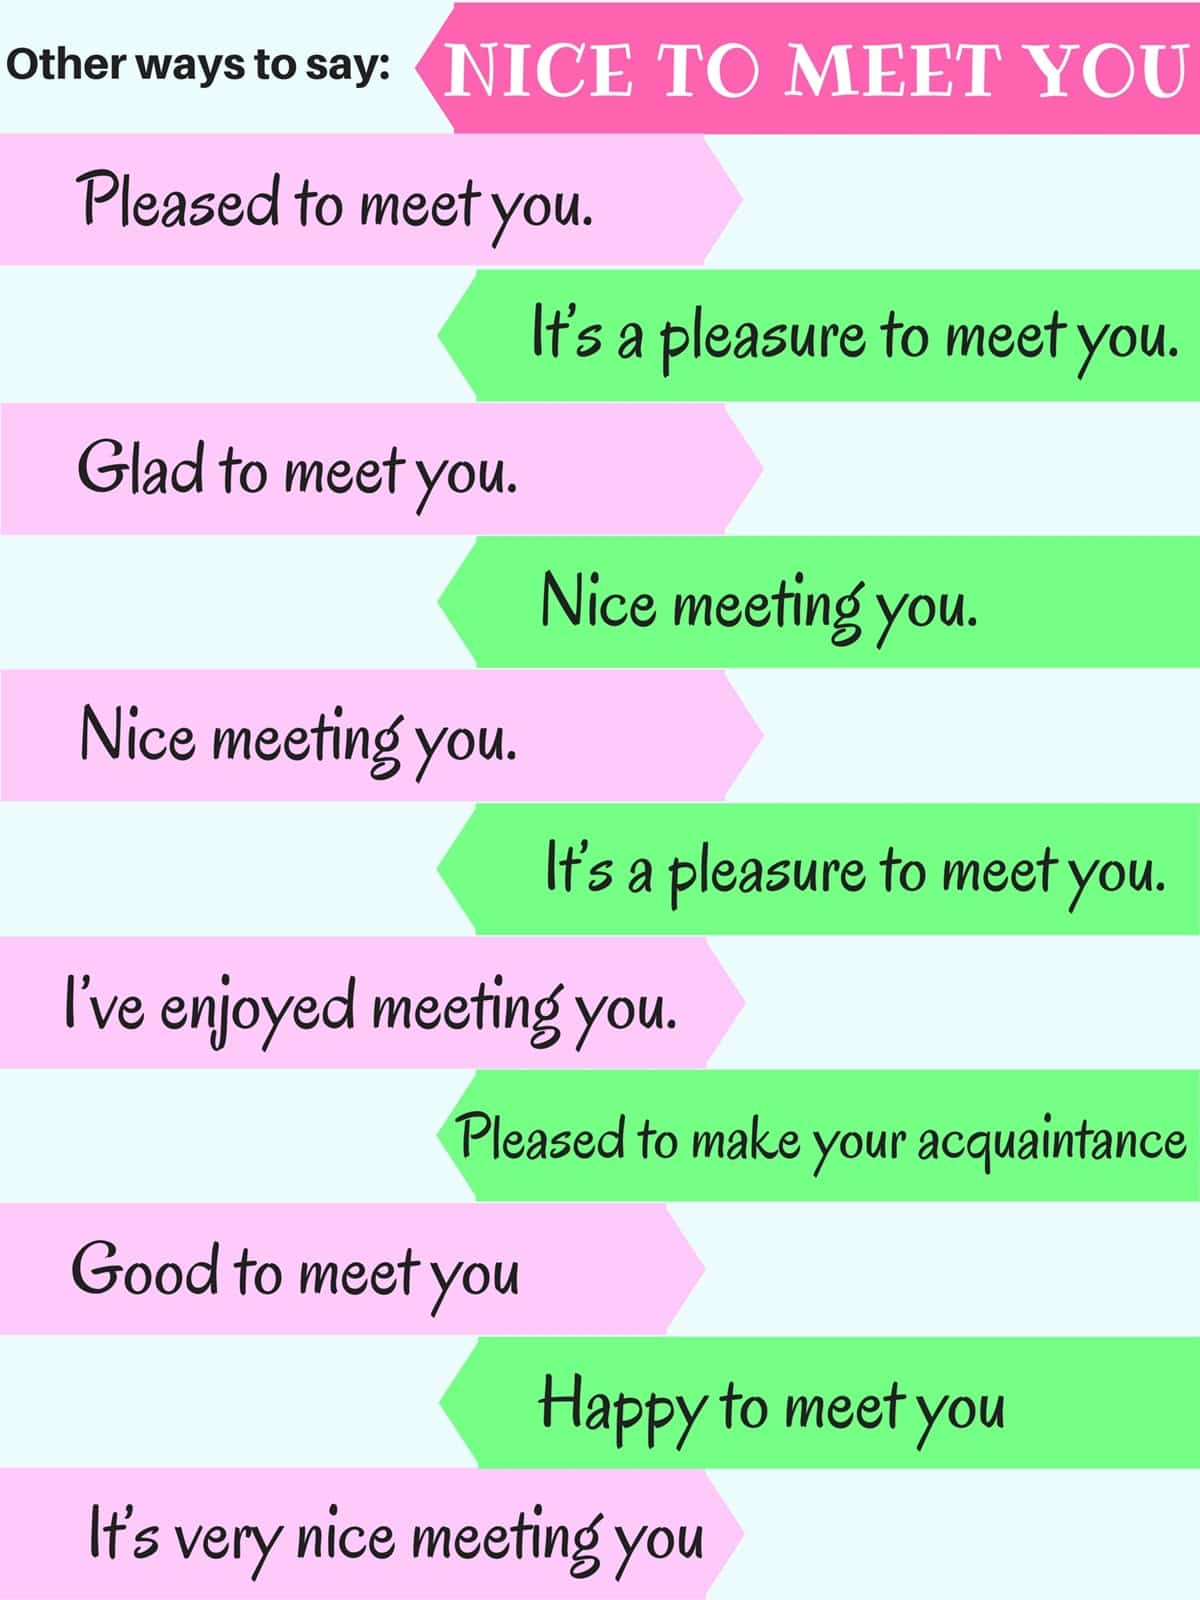 Other Ways to Say: Nice to Meet You